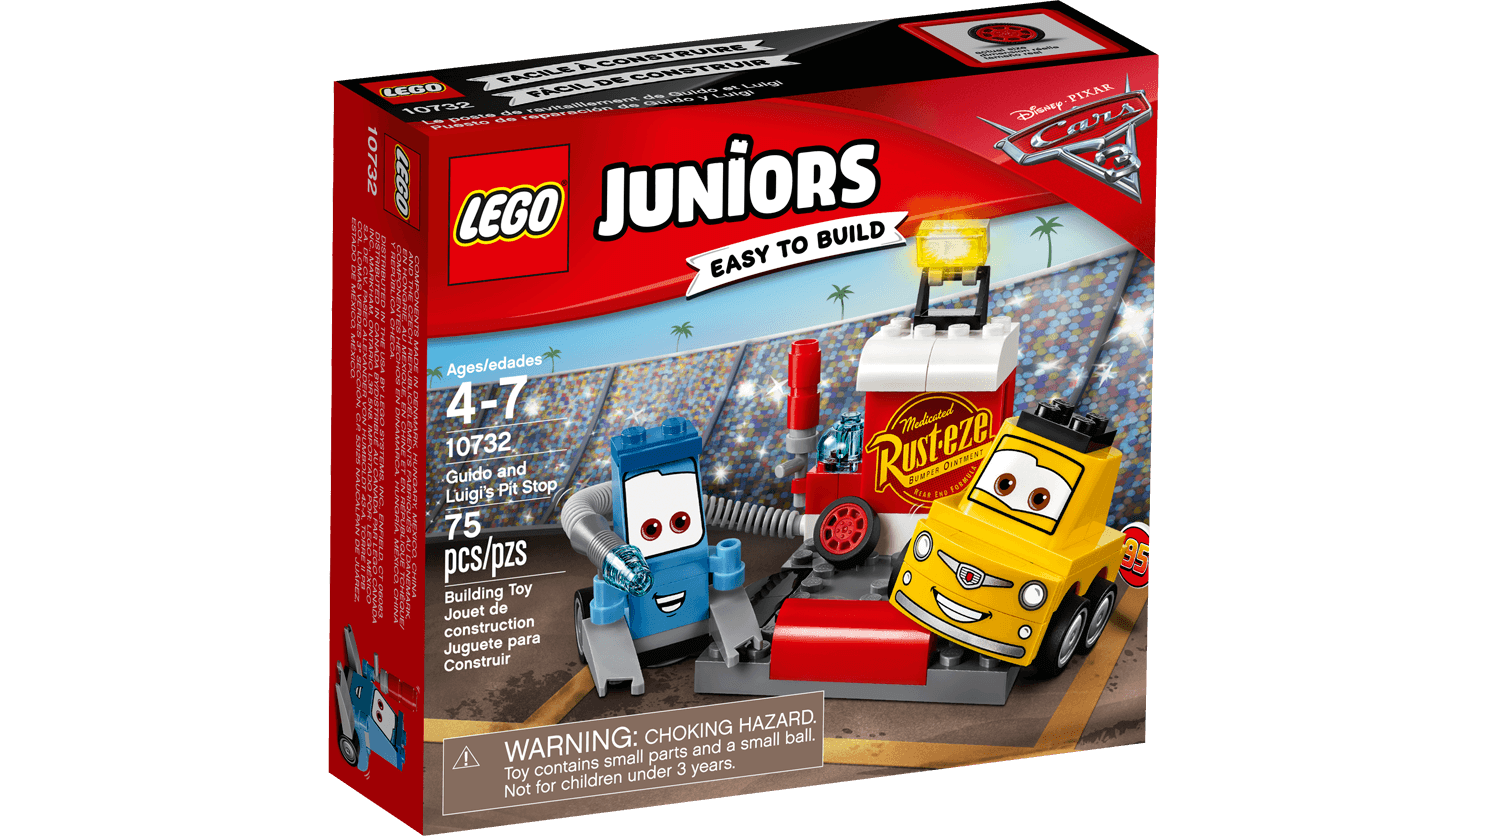 lego_juniors_guido_luigi